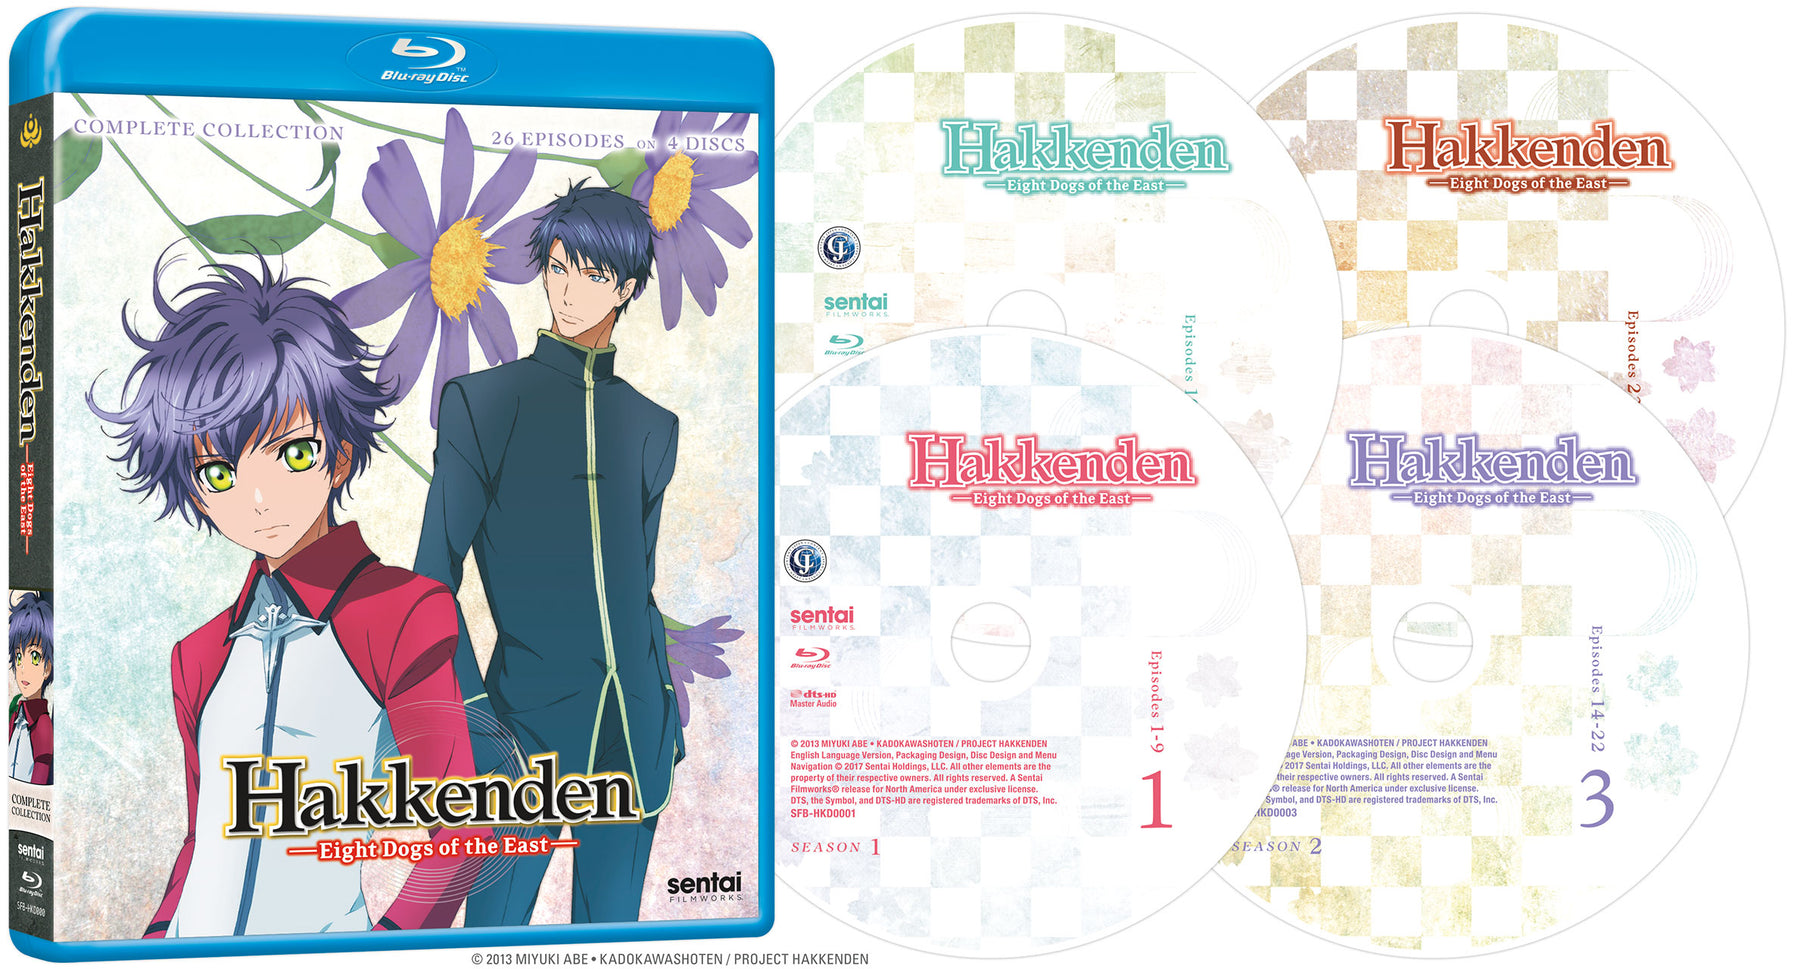 Hakkenden: Eight Dogs of the East Complete Series Blu-ray Disc Spread